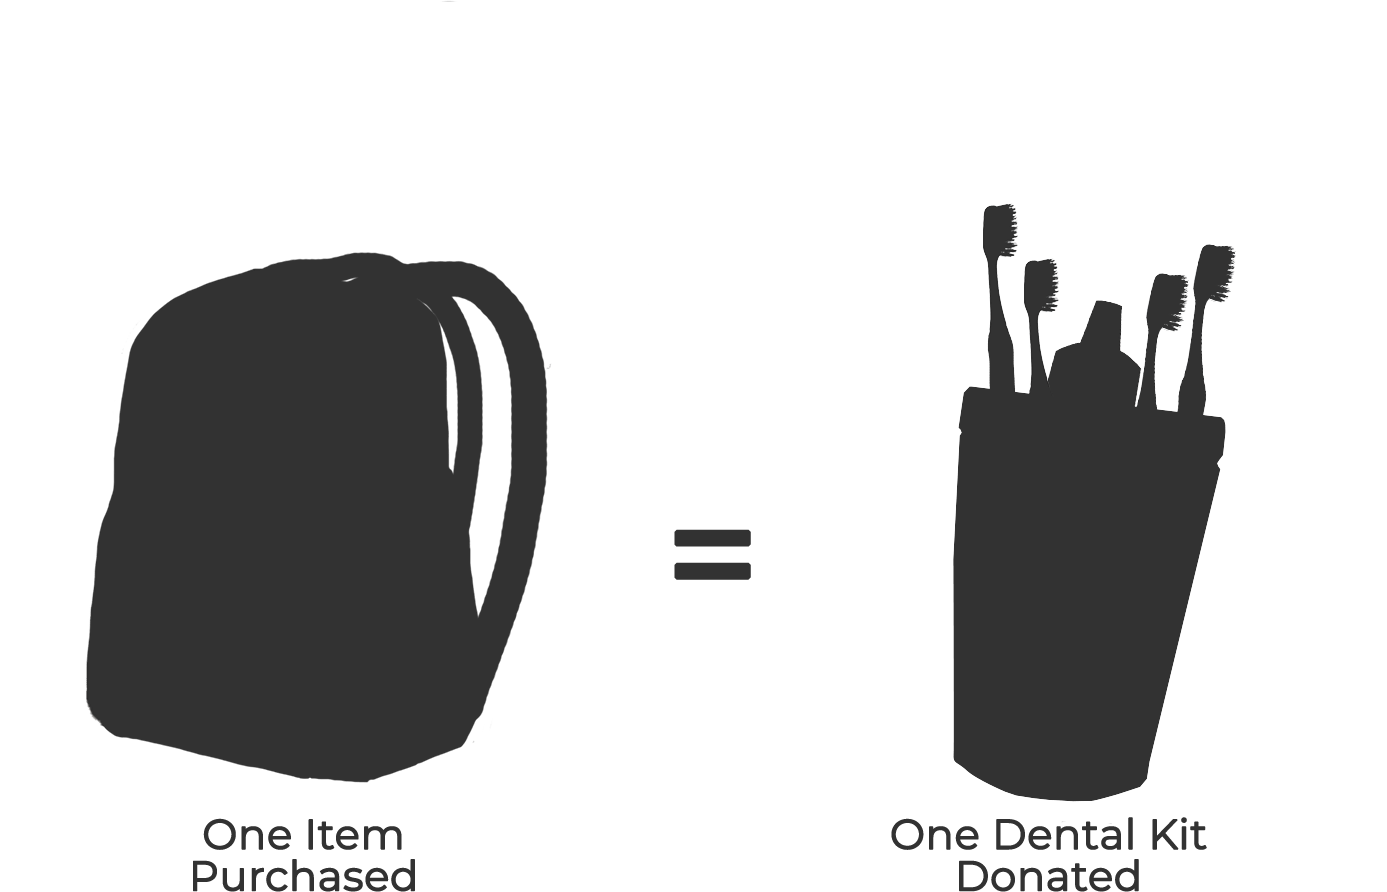 backpack and dental kit donated